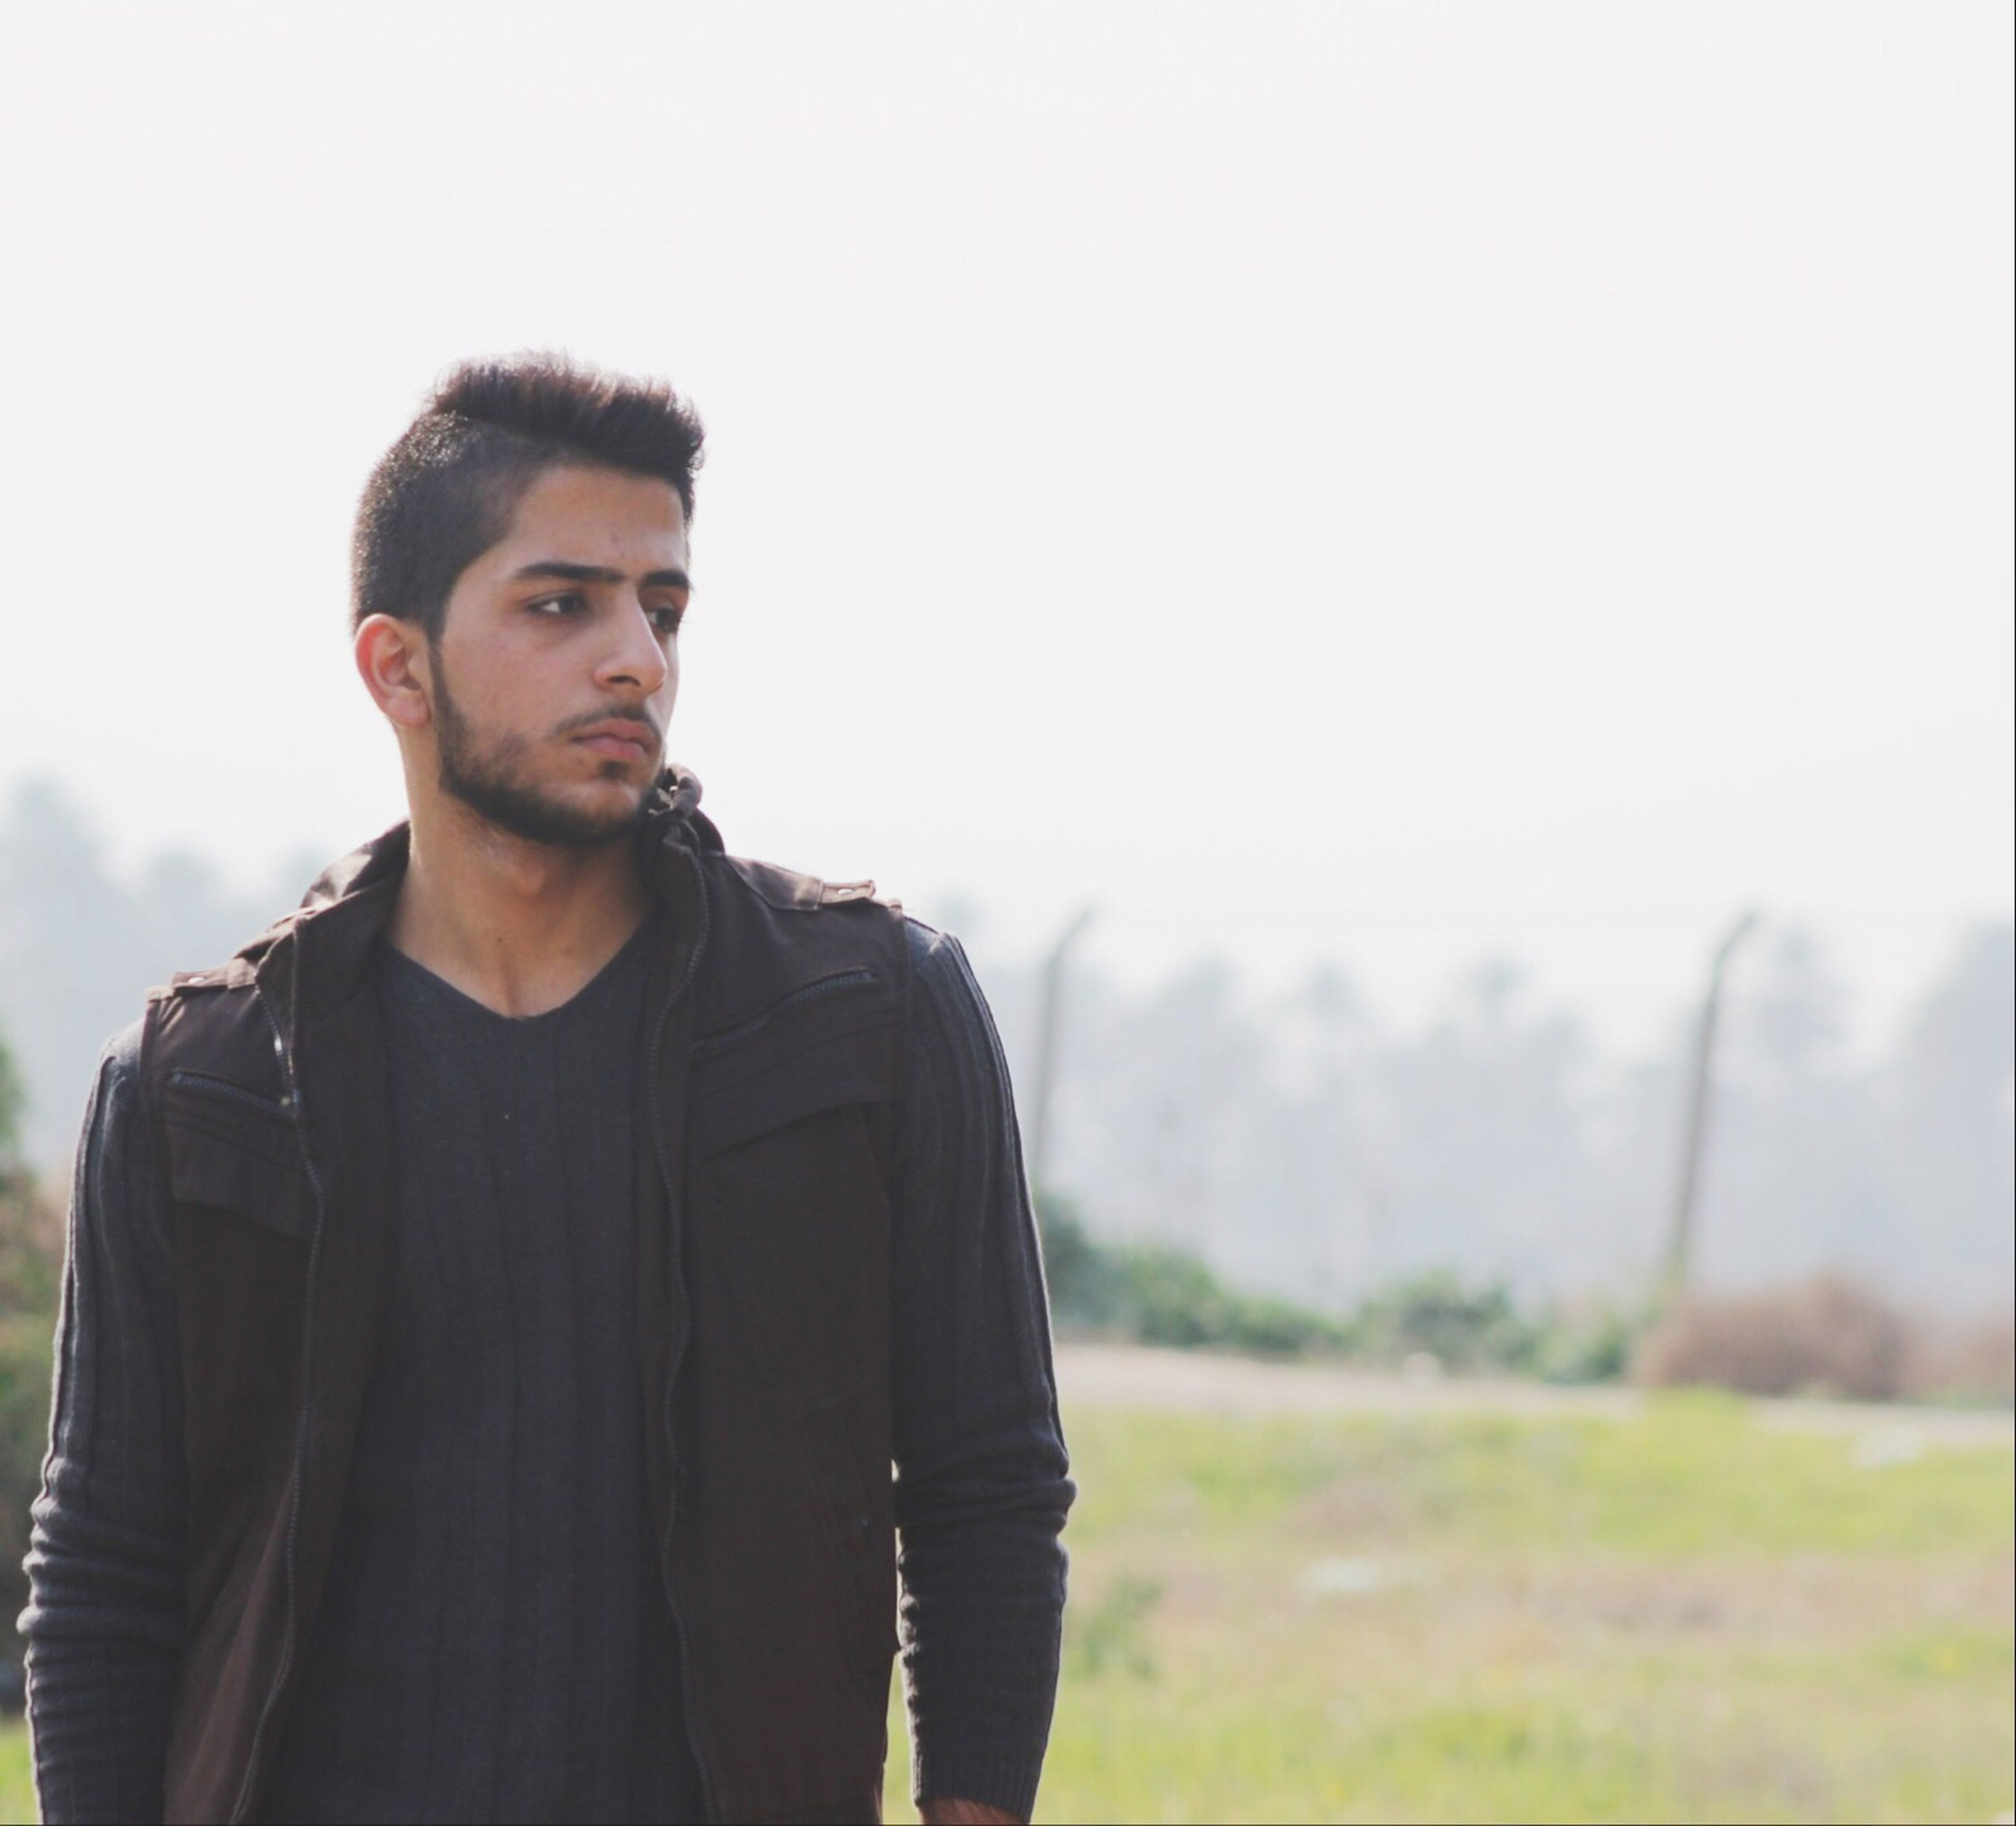 young adult, portrait, lifestyles, young men, looking at camera, casual clothing, person, standing, leisure activity, front view, waist up, smiling, focus on foreground, headshot, three quarter length, copy space, field